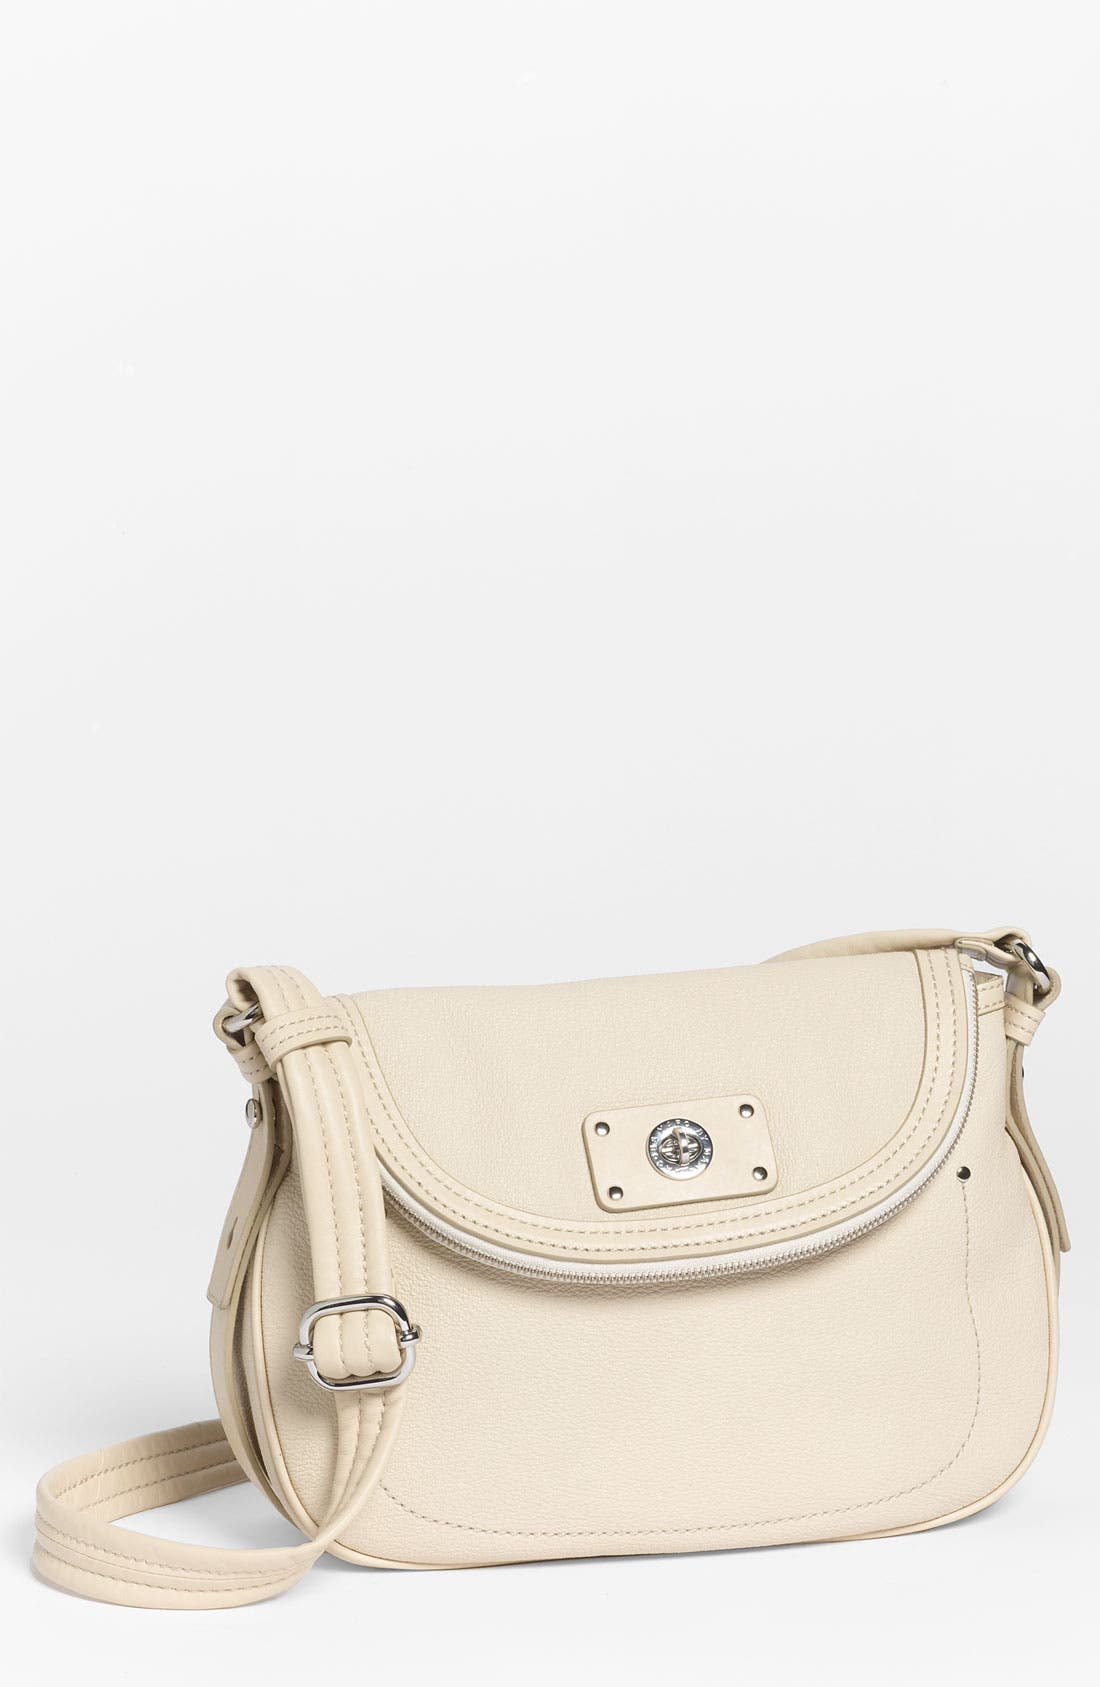 Alternate Image 1 Selected - MARC BY MARC JACOBS 'Totally Turnlock - Natasha' Crossbody Bag